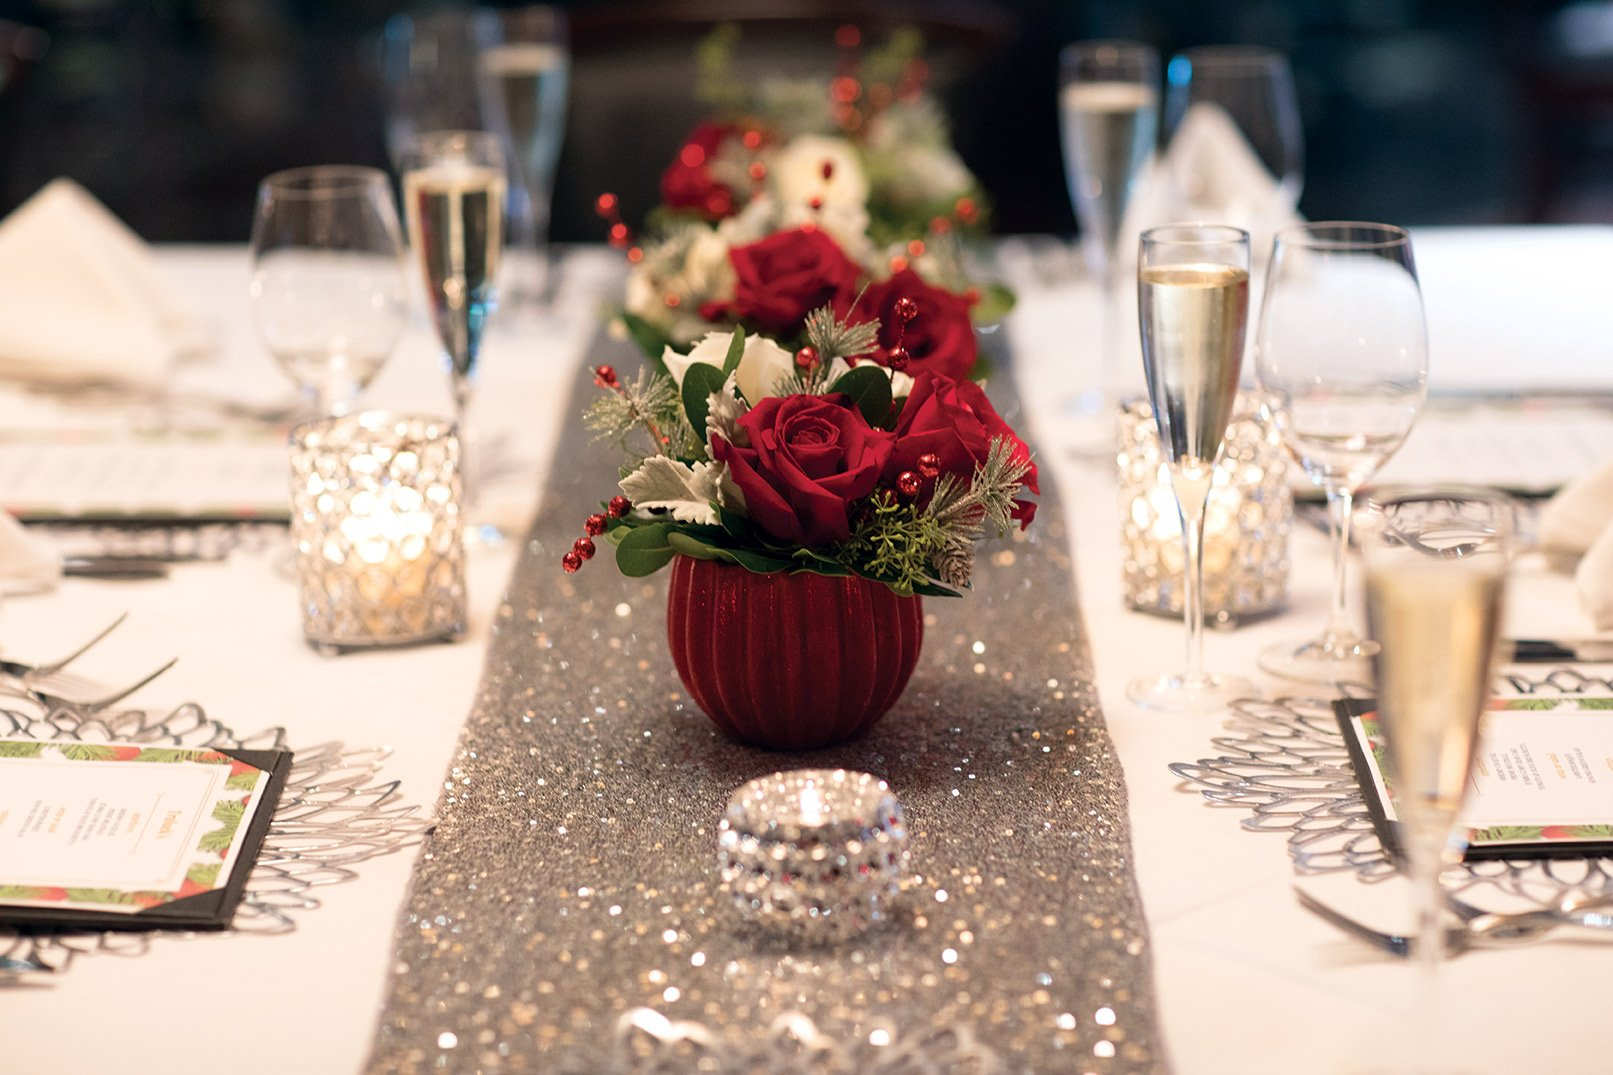 private dining holiday floral centerpiece with red and white roses and holiday greenery